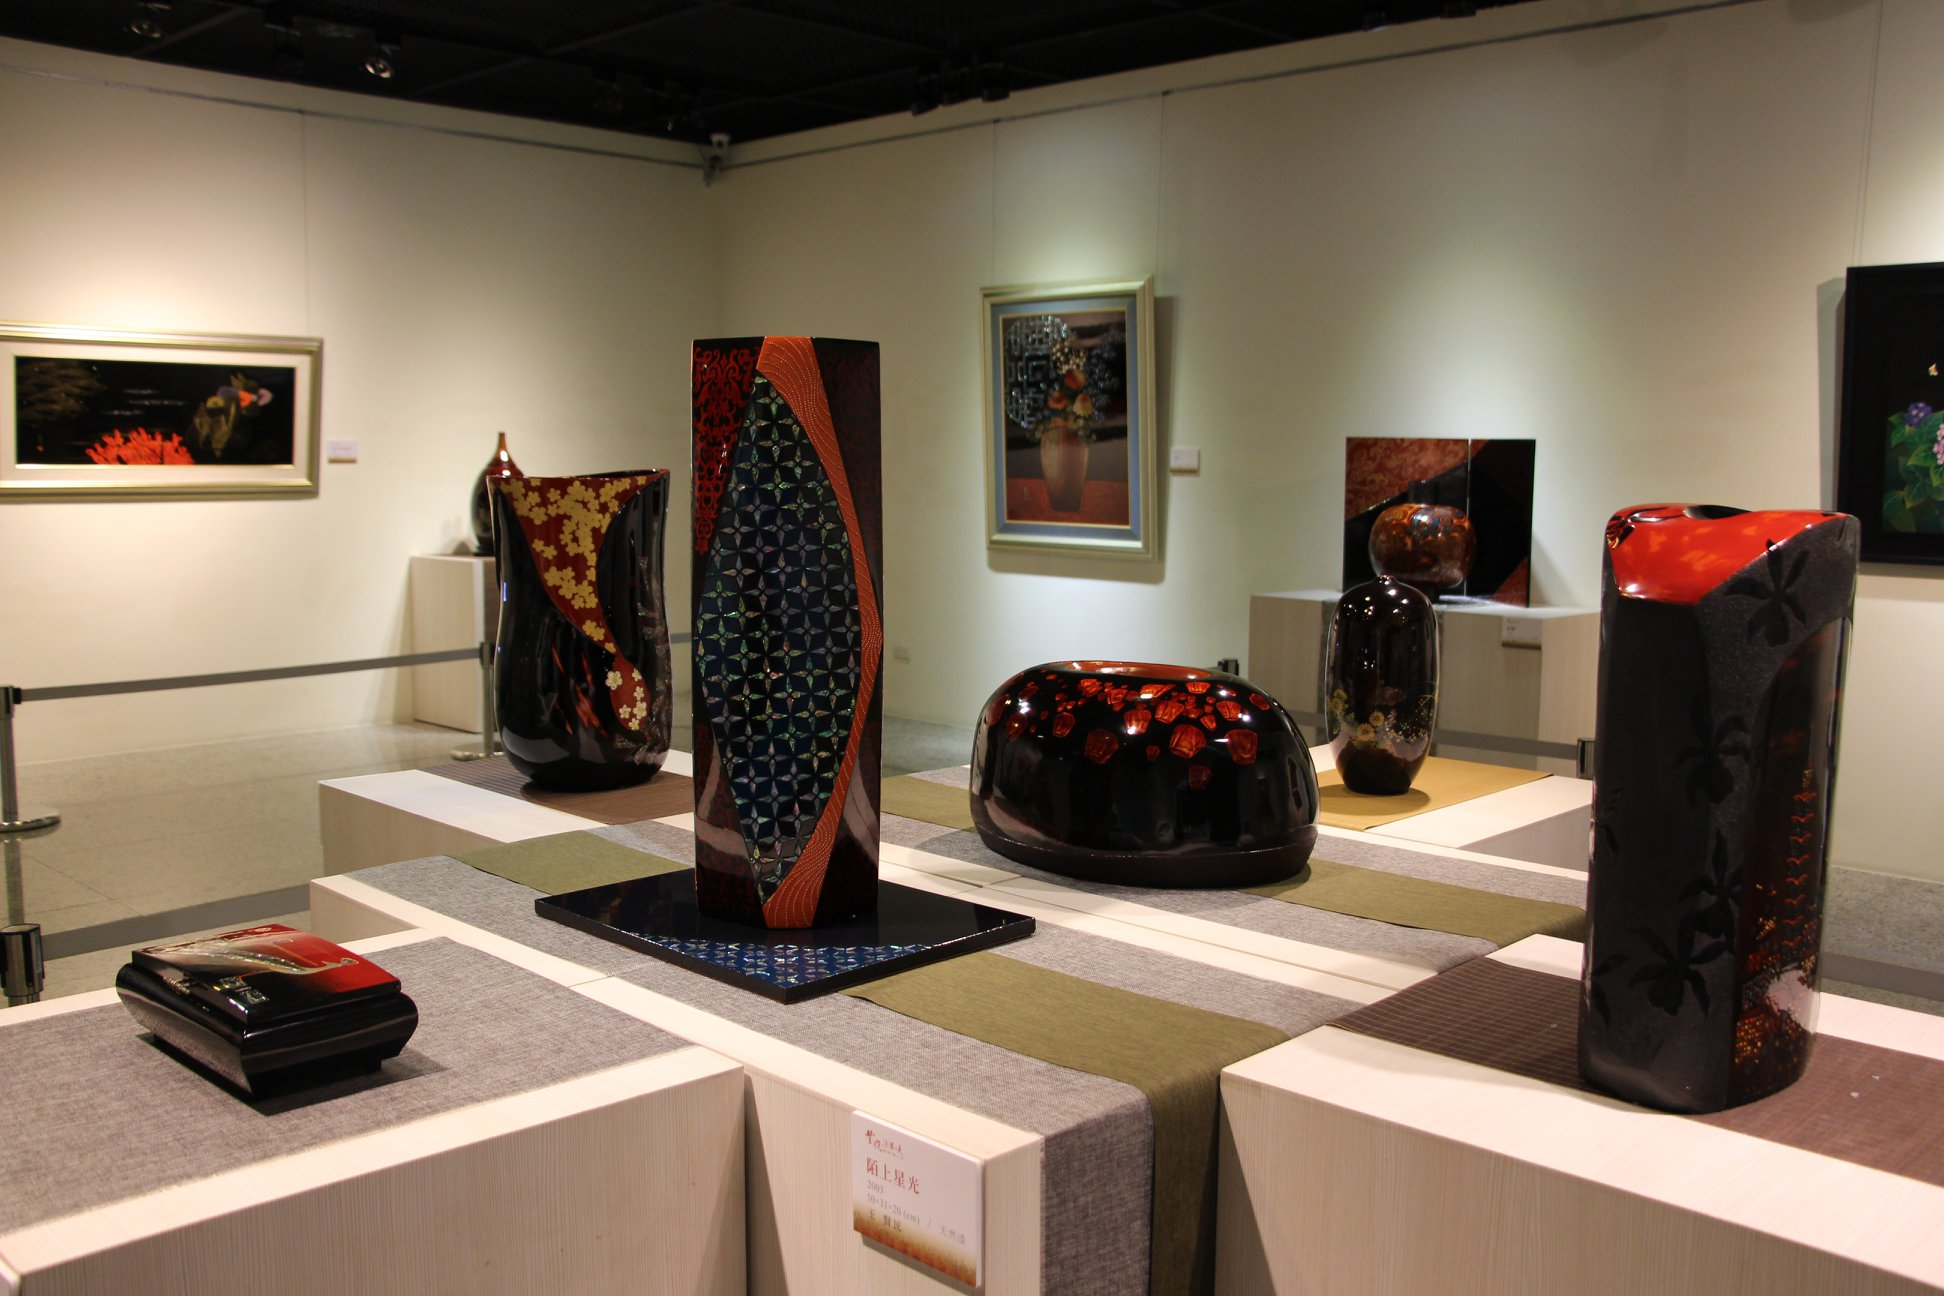 'Joint Exhibition of Lacquer Master Wang Ching-shuang and Sons'